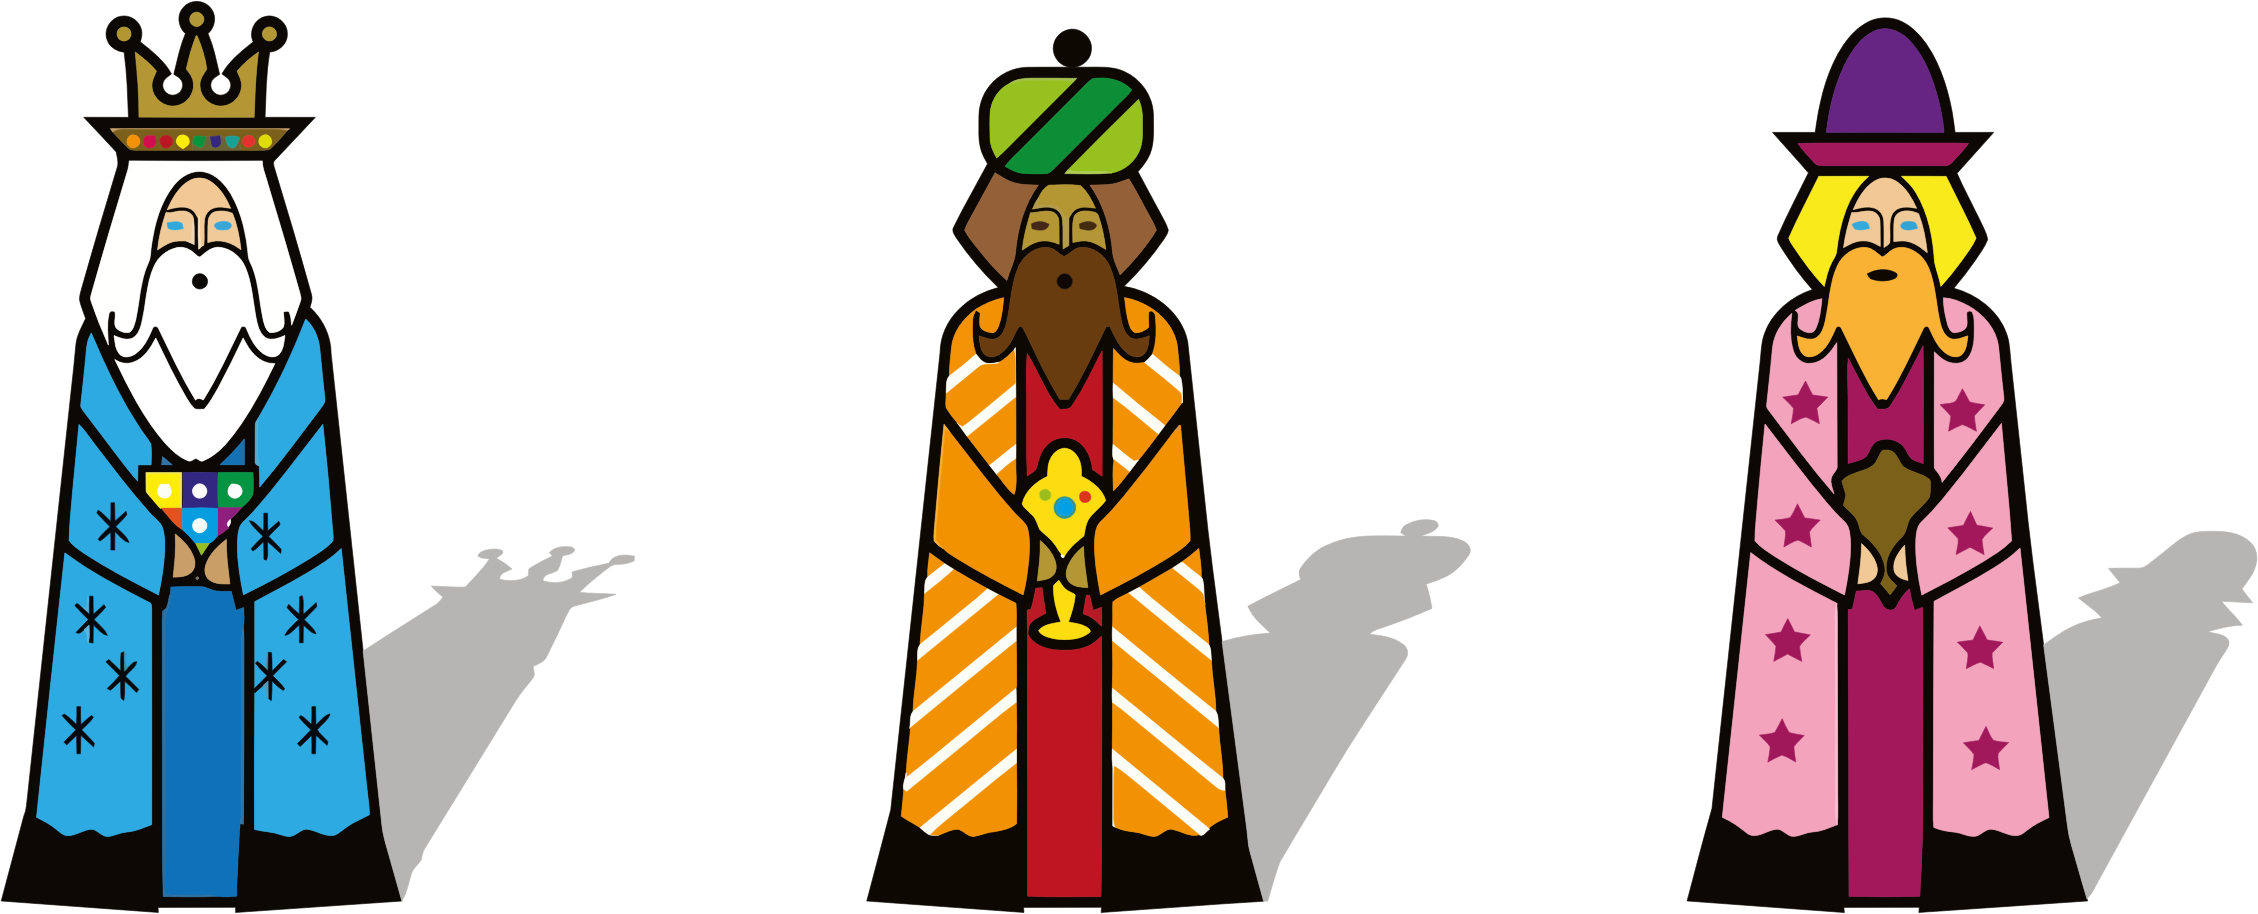 King clipart wise man, King wise man Transparent FREE for.